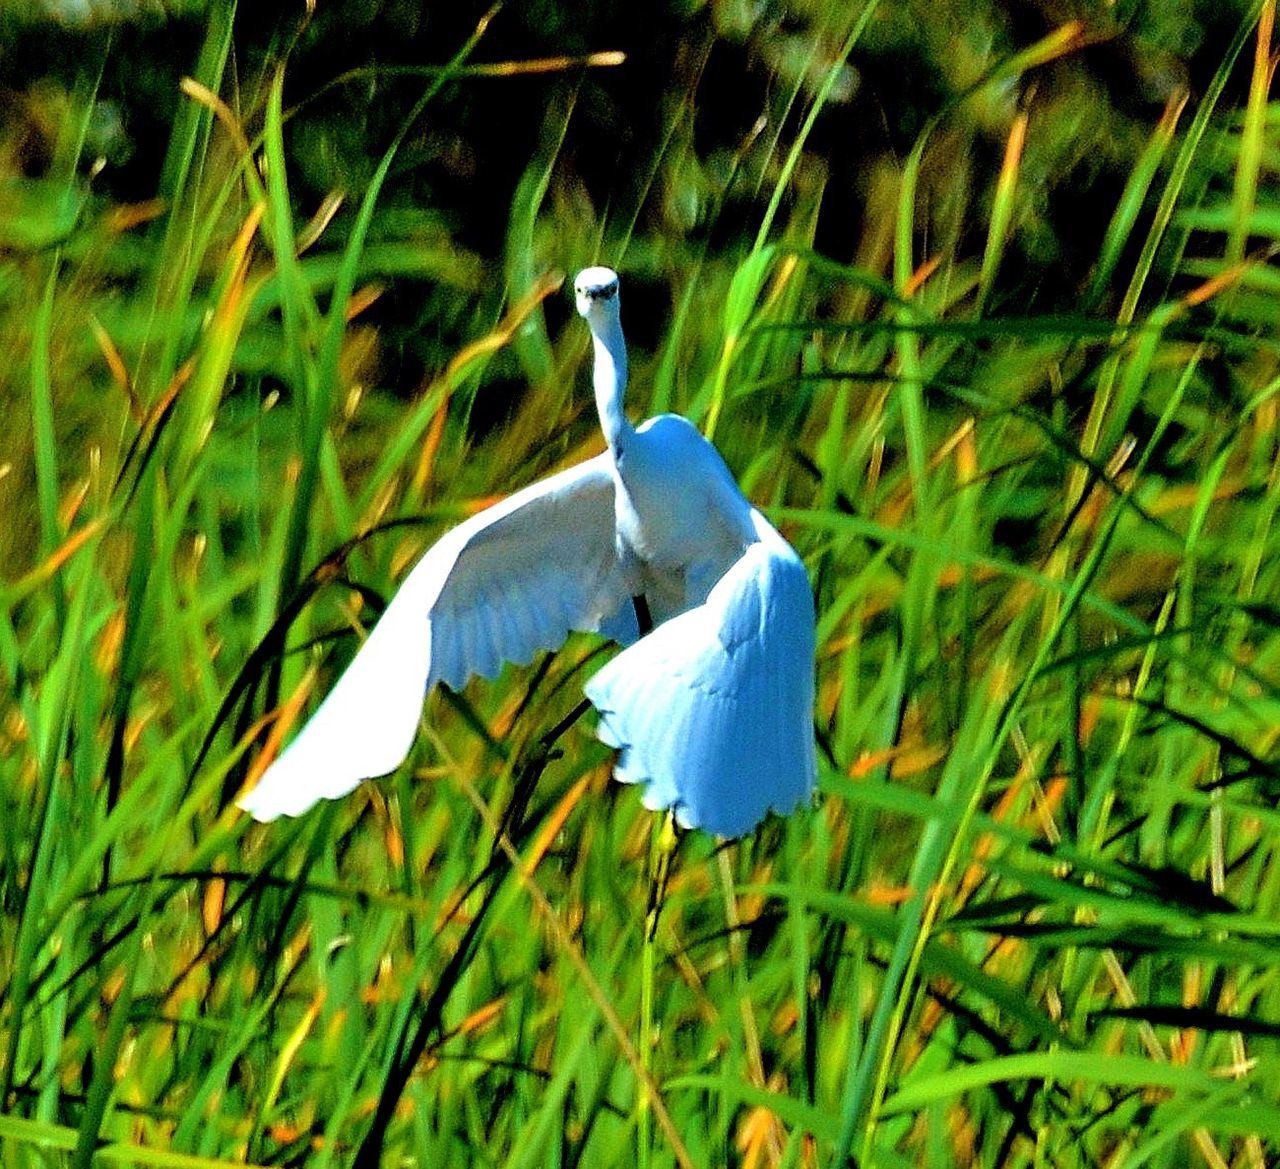 nature, animal themes, beauty in nature, animals in the wild, grass, one animal, growth, bird, green color, plant, field, no people, day, animal wildlife, outdoors, flower, close-up, perching